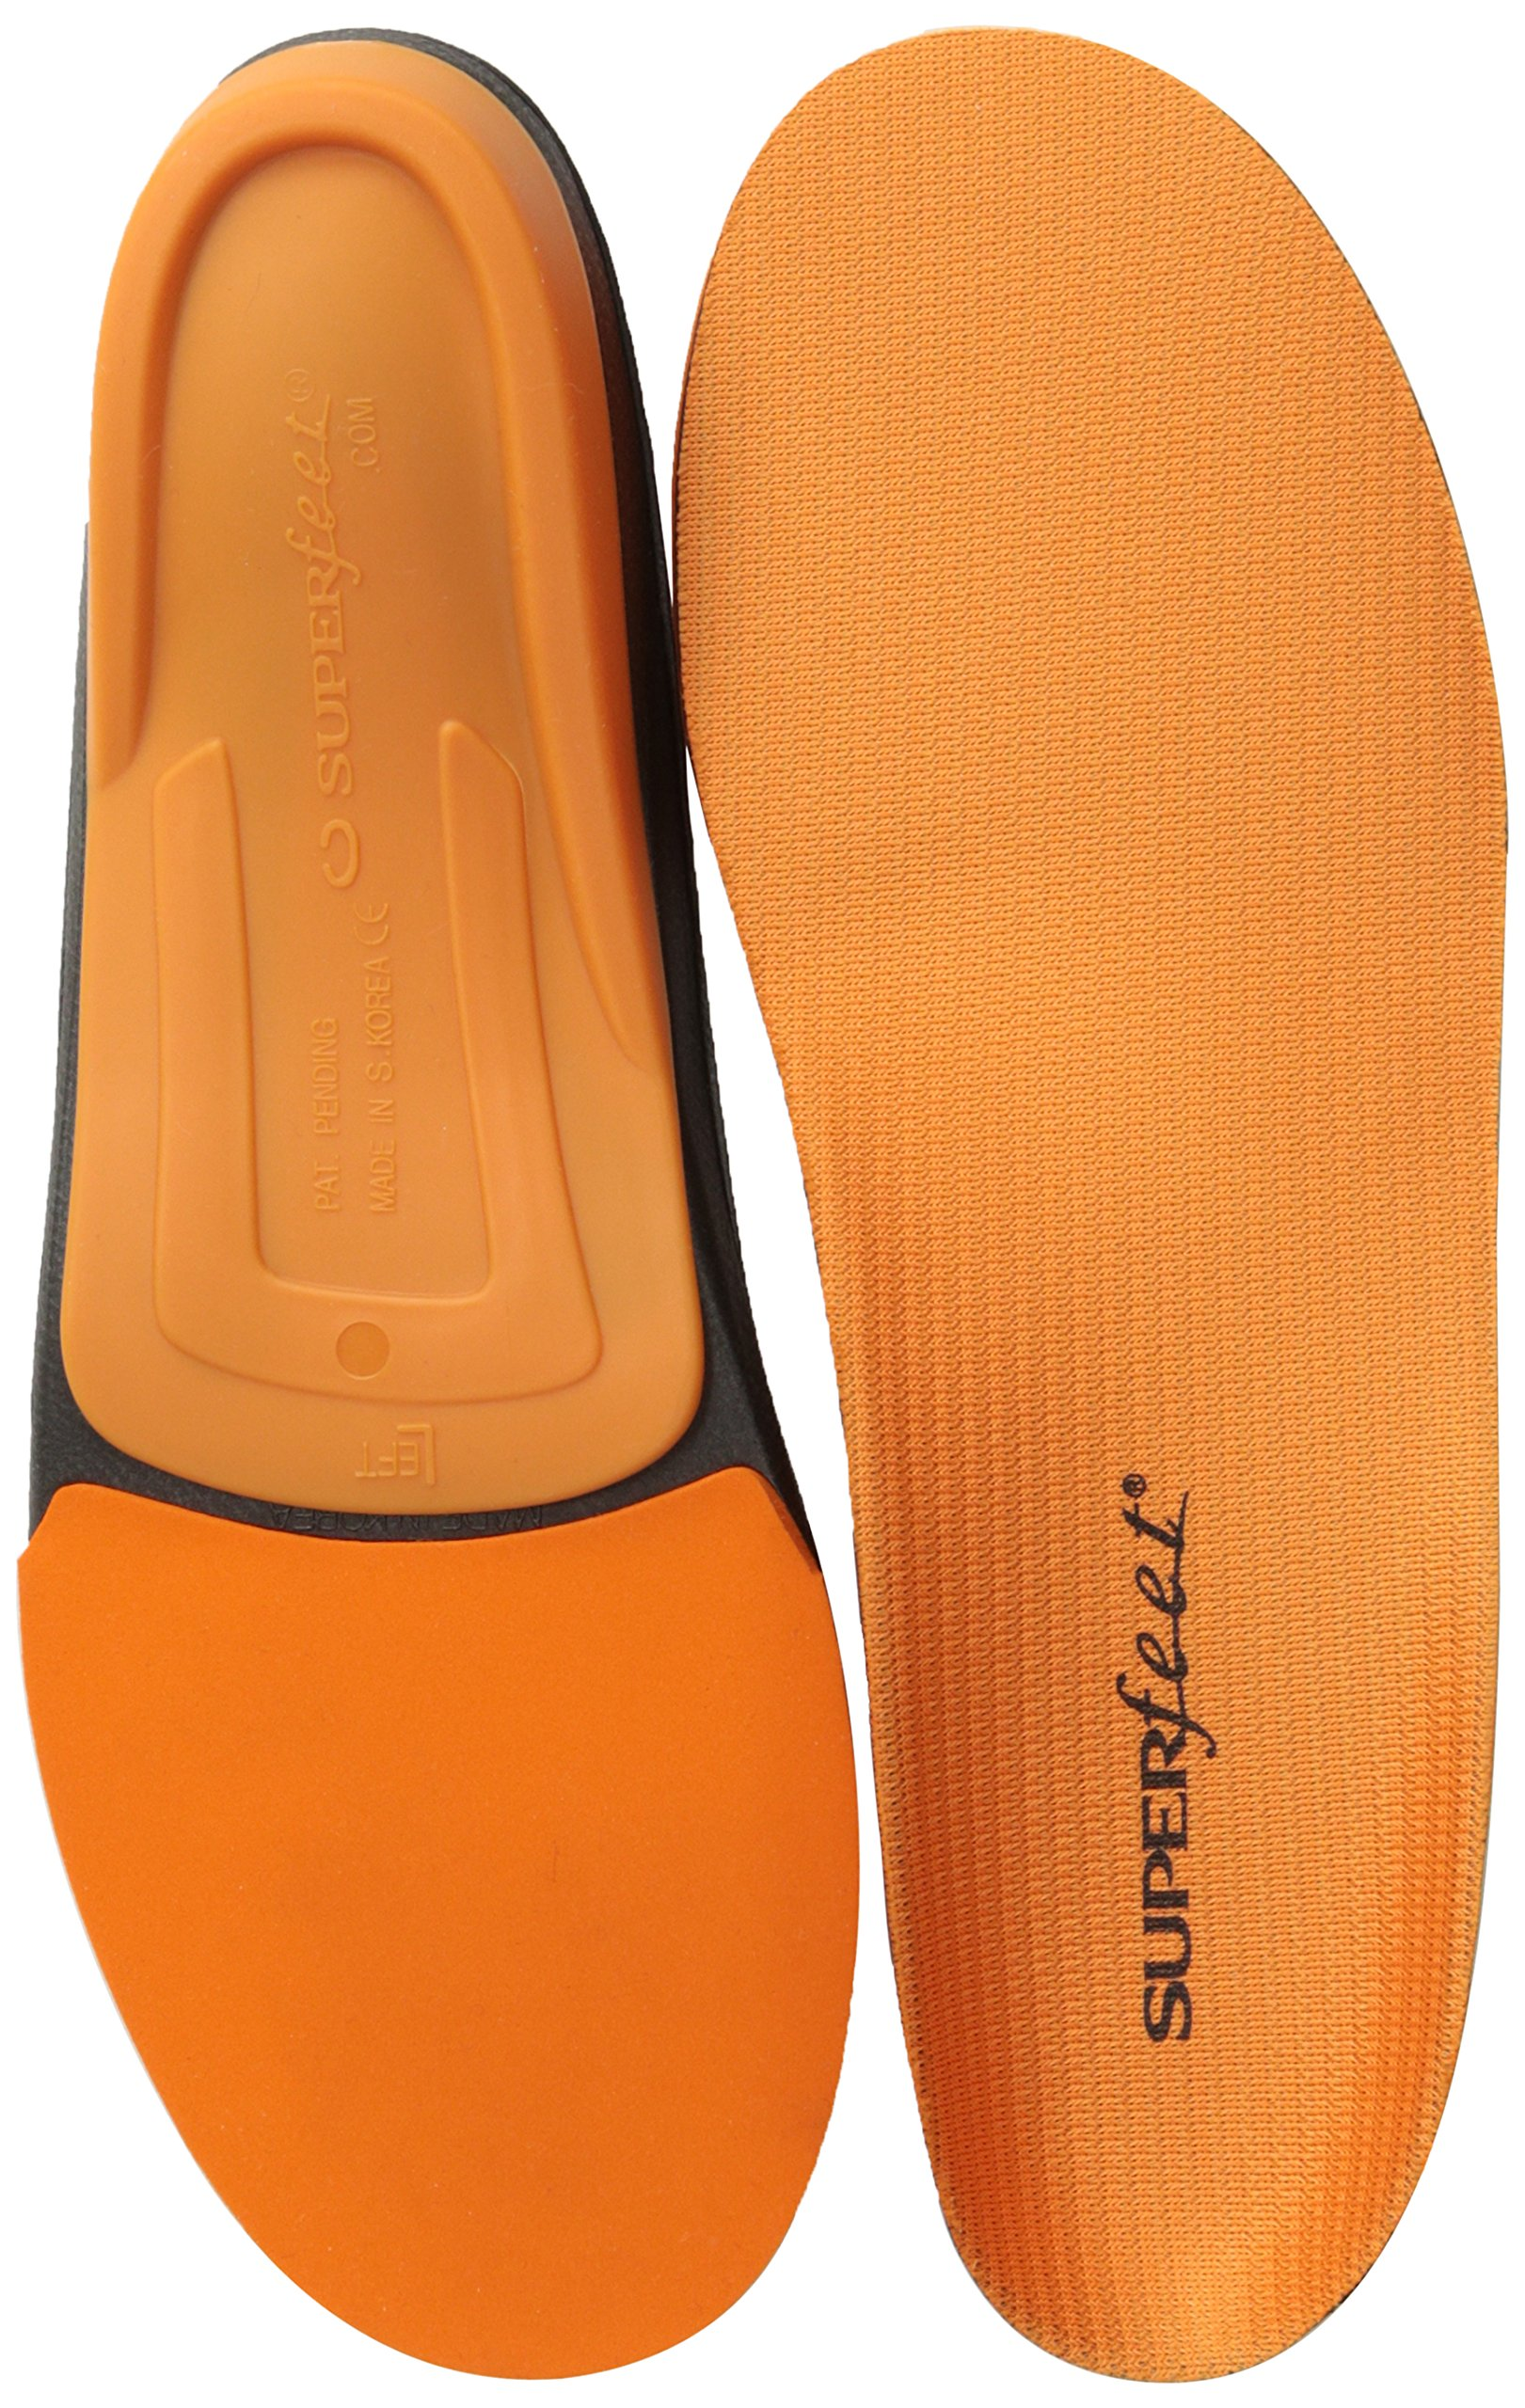 Superfeet Men's Orange Premium Insoles,Orange,C: 5.5-7 US Mens